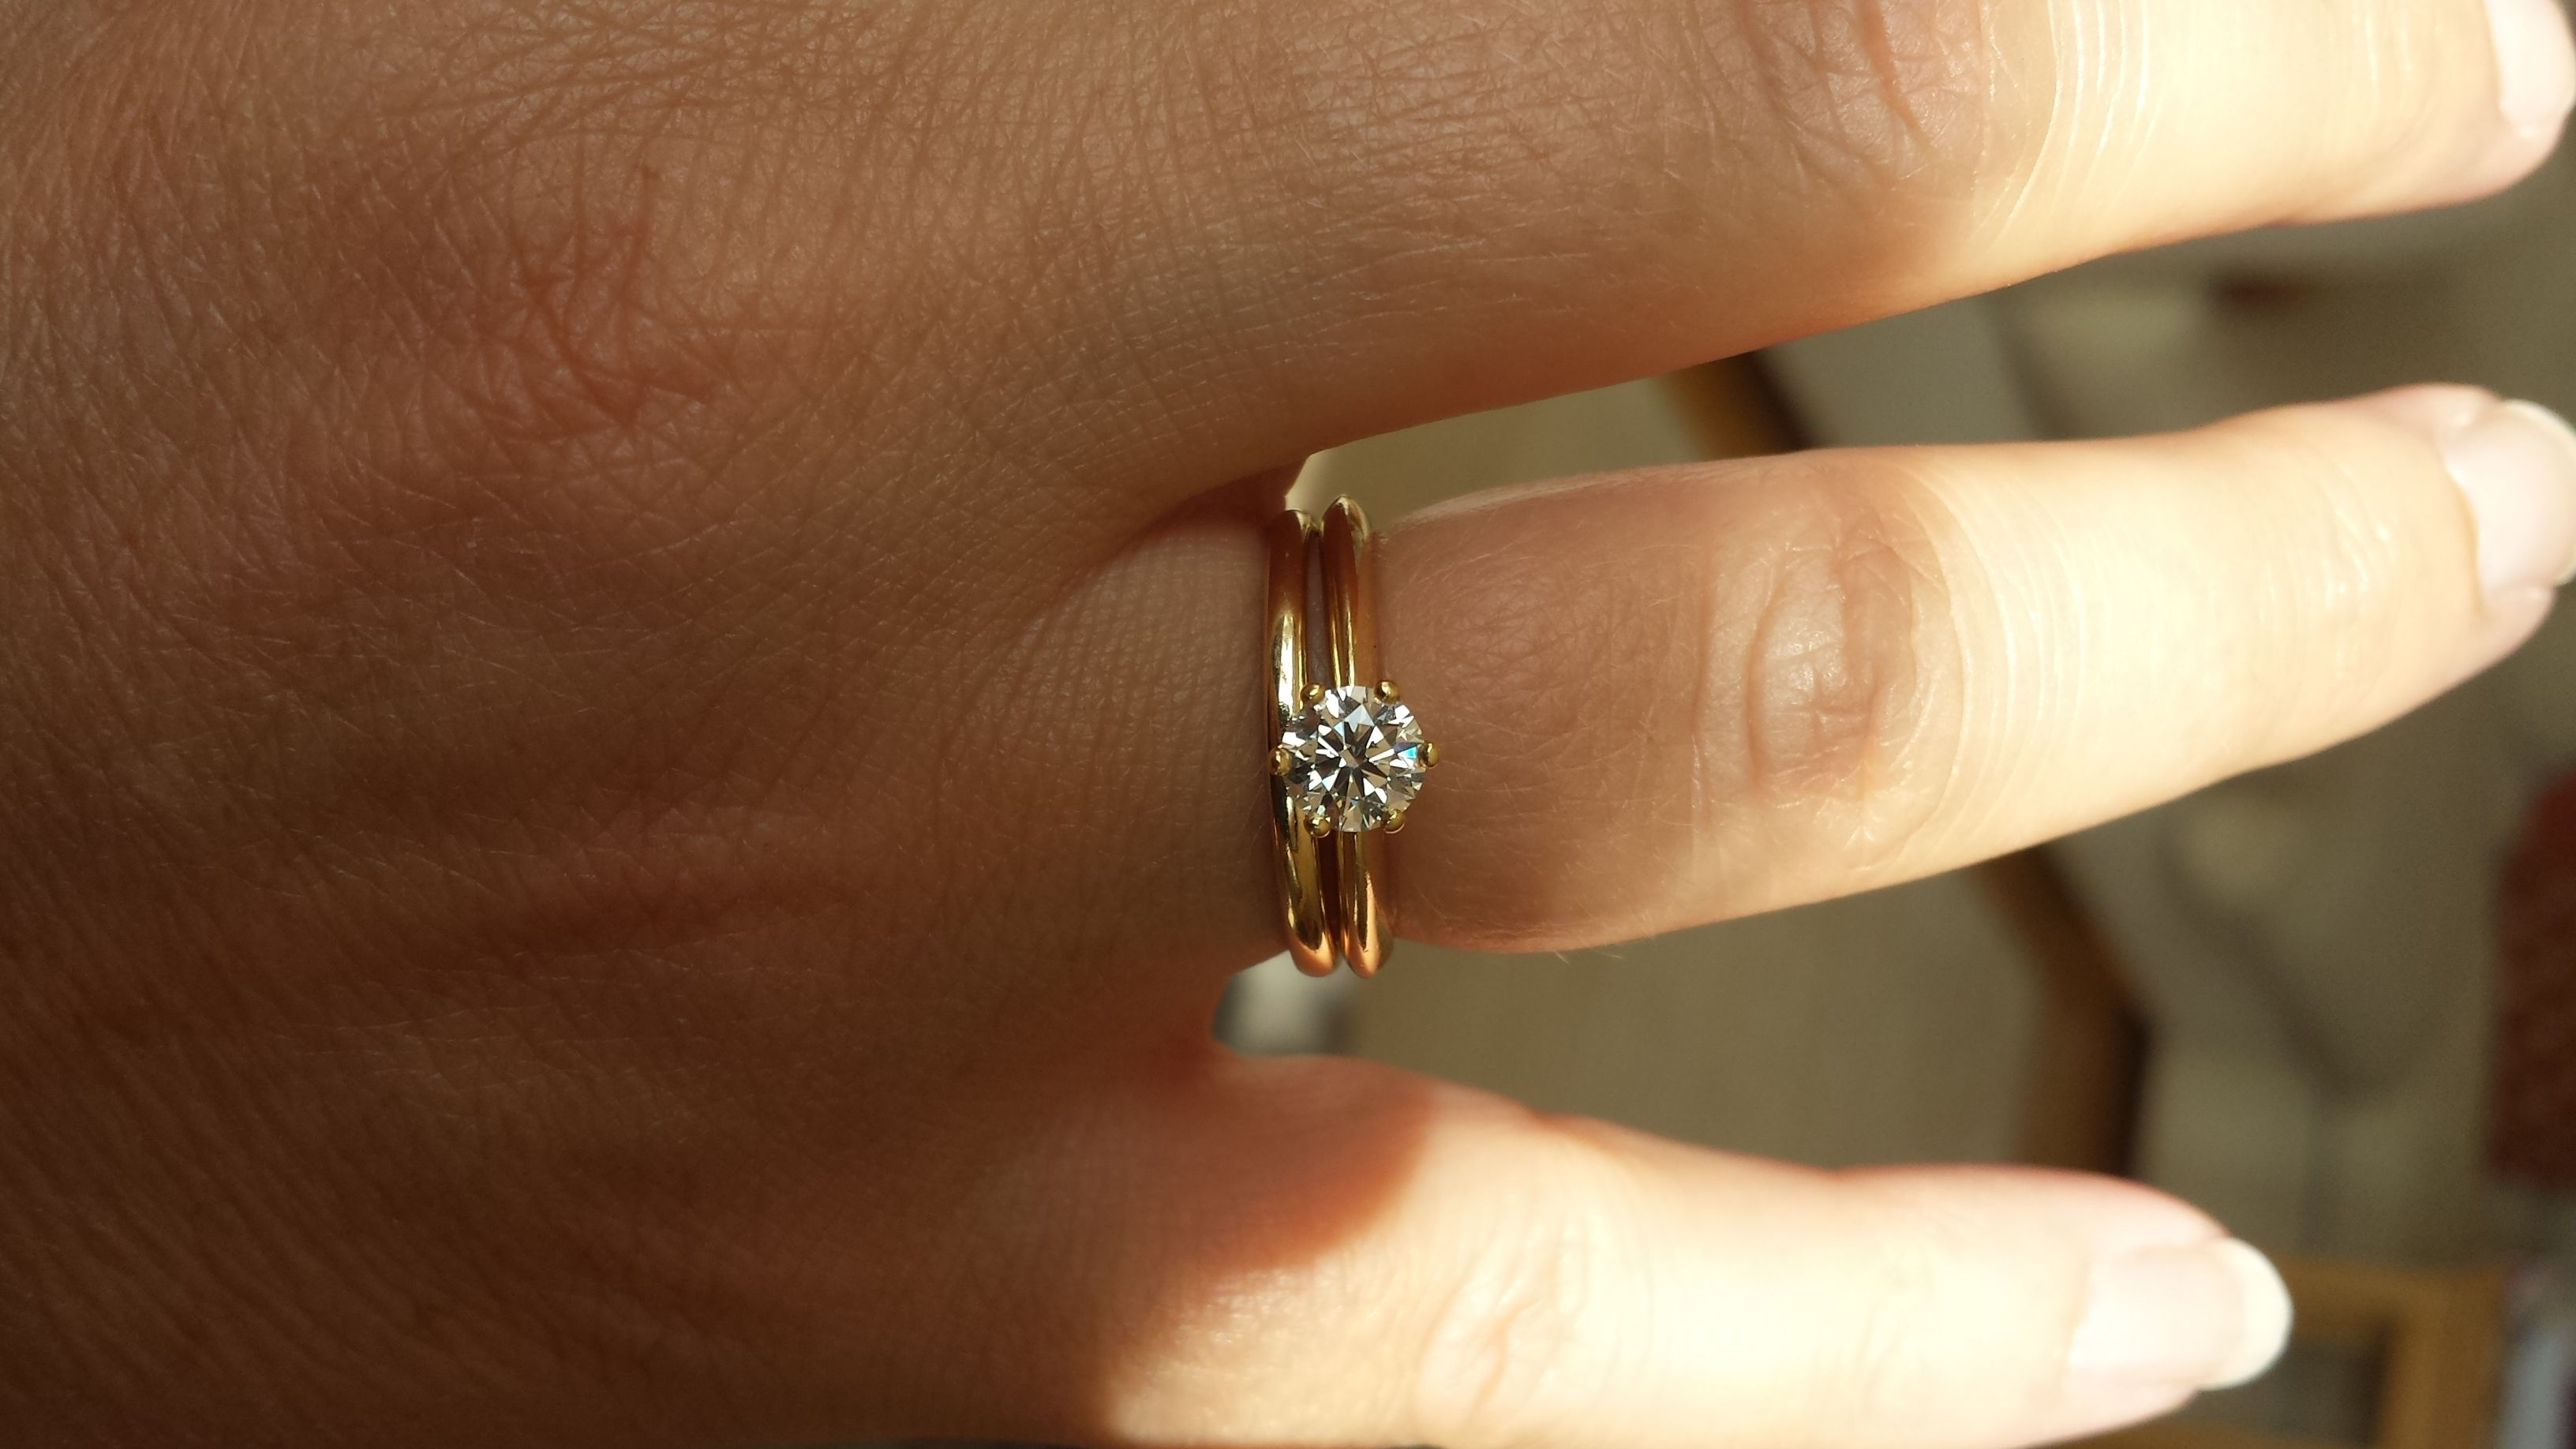 1 2 Carat Engagement Ring Too Small